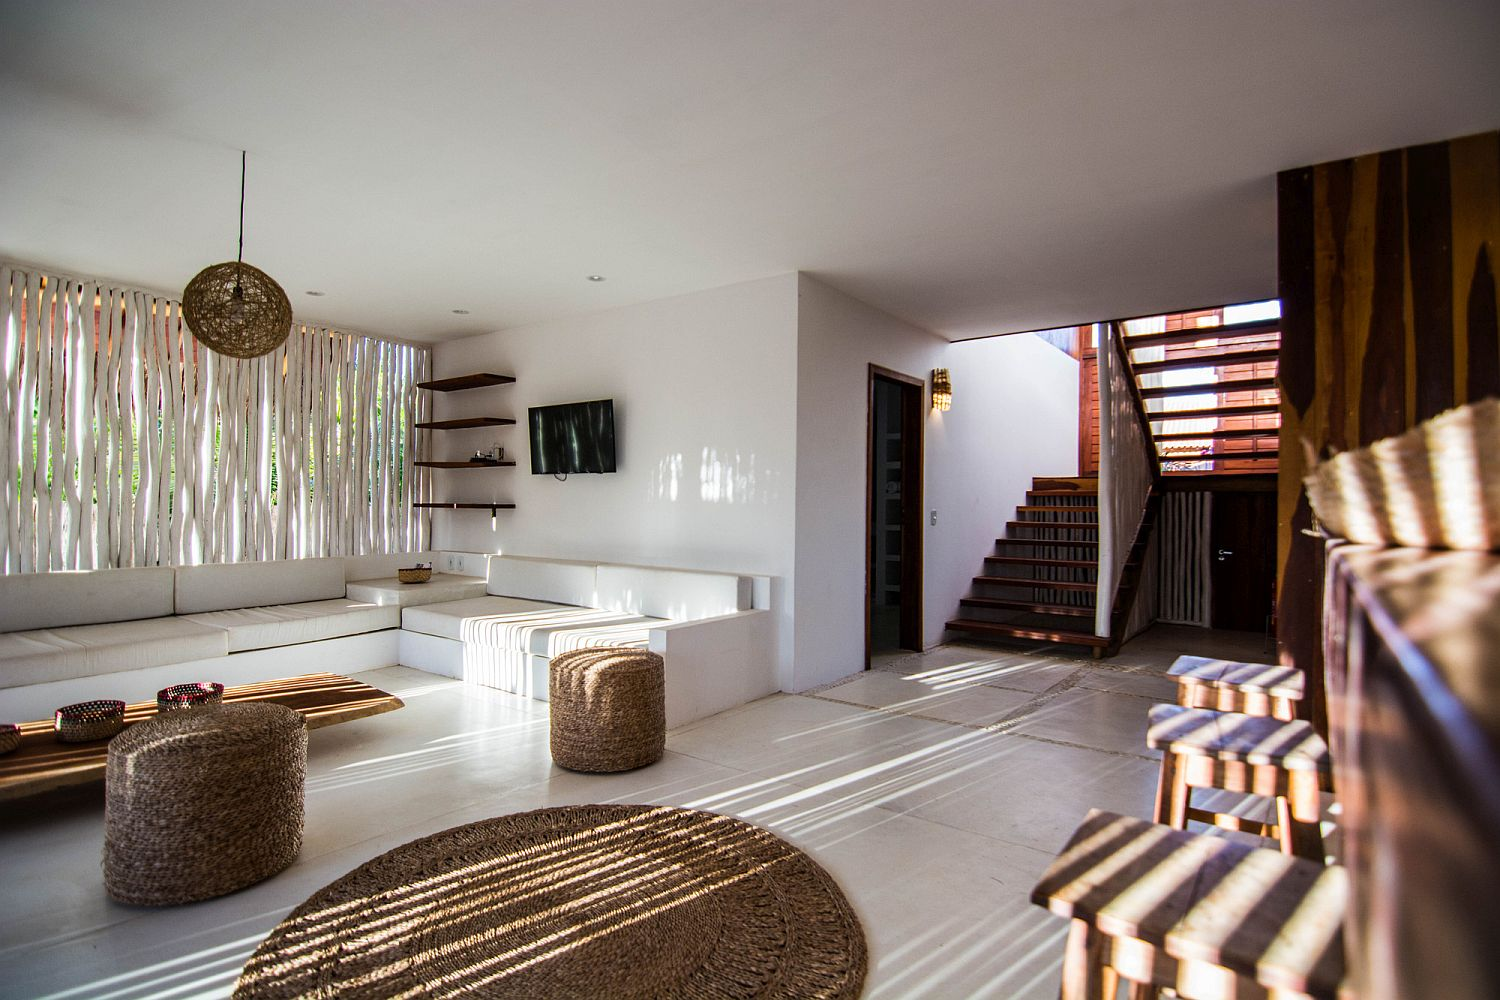 Rattan, wood and bamboo decor inside the all-white vacation home in Brazil